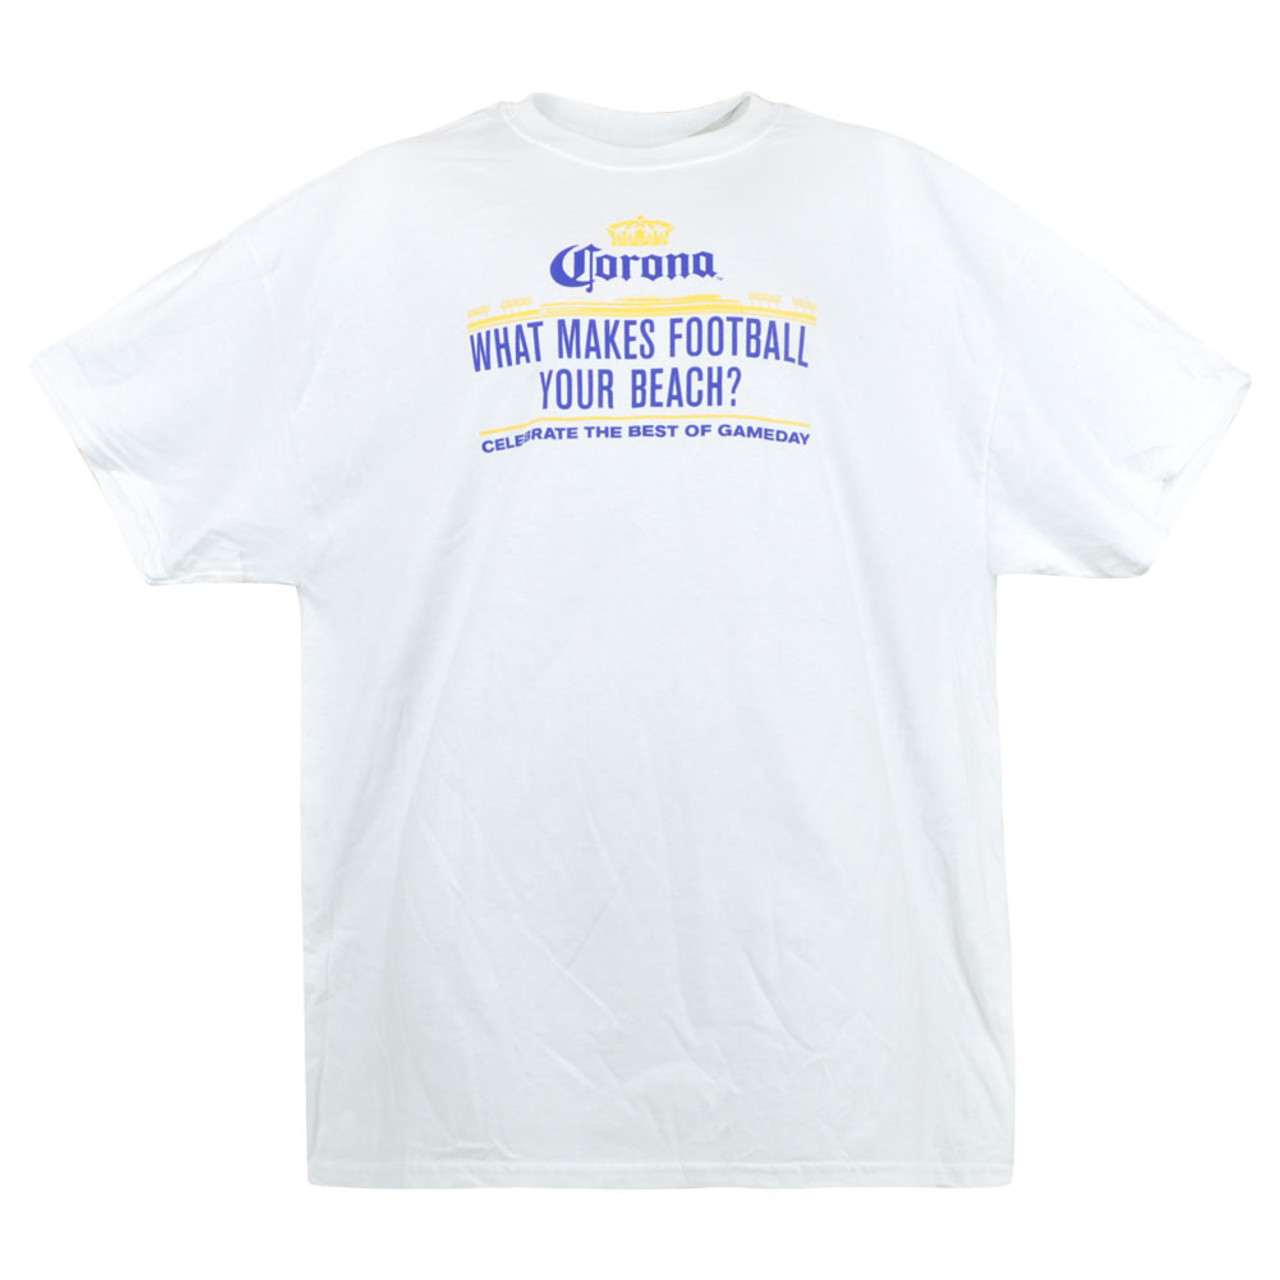 Corona What Makes Football Your Beach Best Of Gameday Graphic Tee Novelty Xl Cap Store Online Com